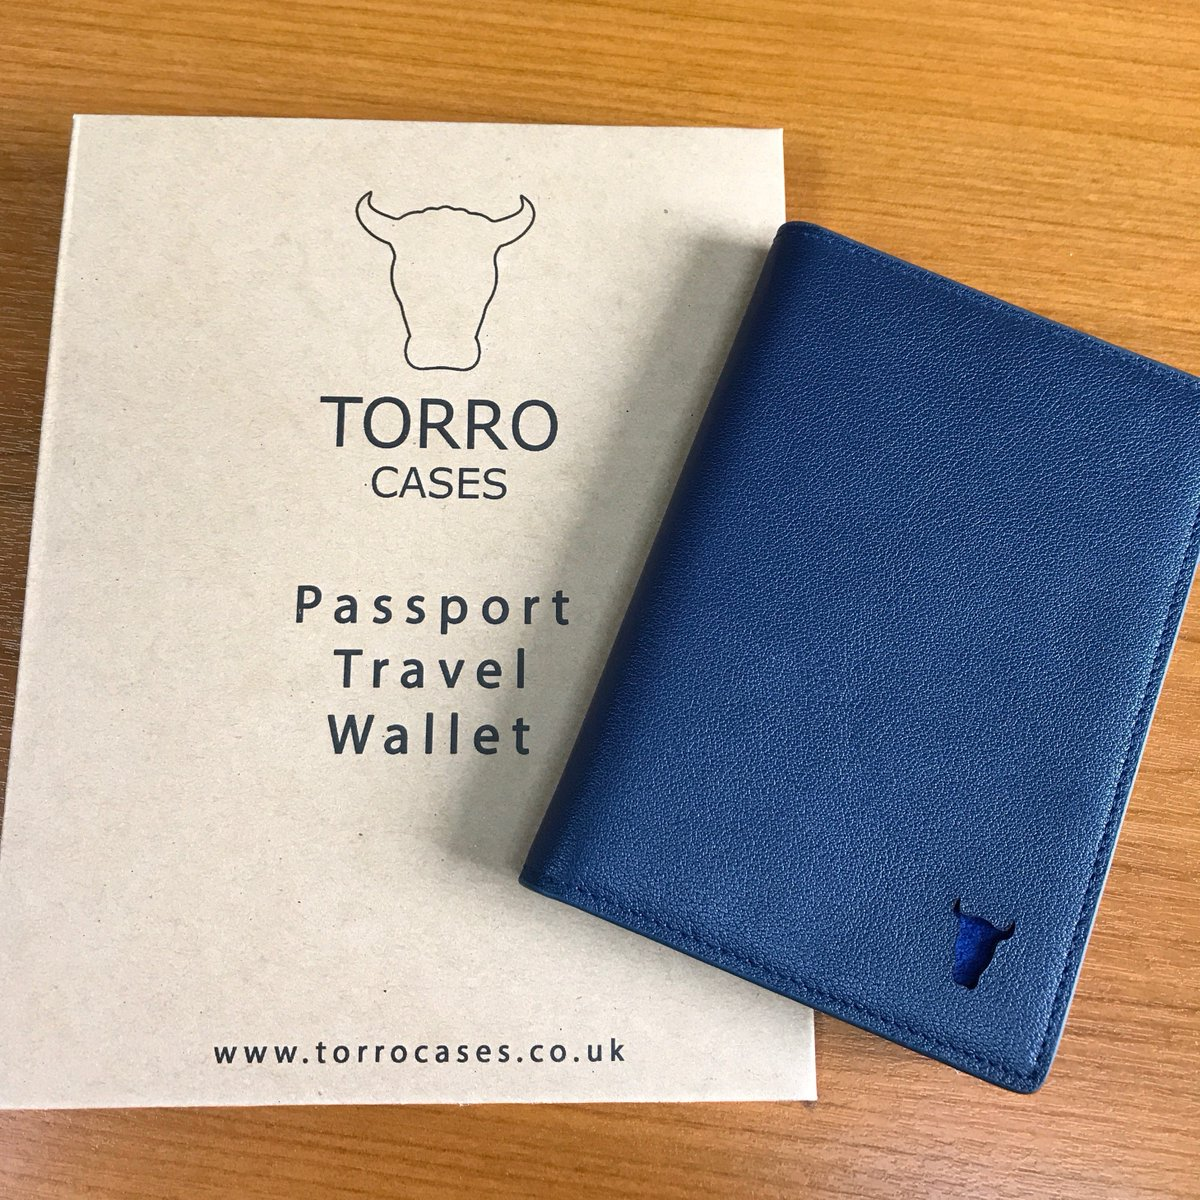 #WIN an #EXCLUSIVE #oneofakind TORRO navy blue passport wallet. (ID Right Side) Simply Like, follow &amp; RT #giveaway ends Fri #TravelTuesday<br>http://pic.twitter.com/ds2d1Ezd2D